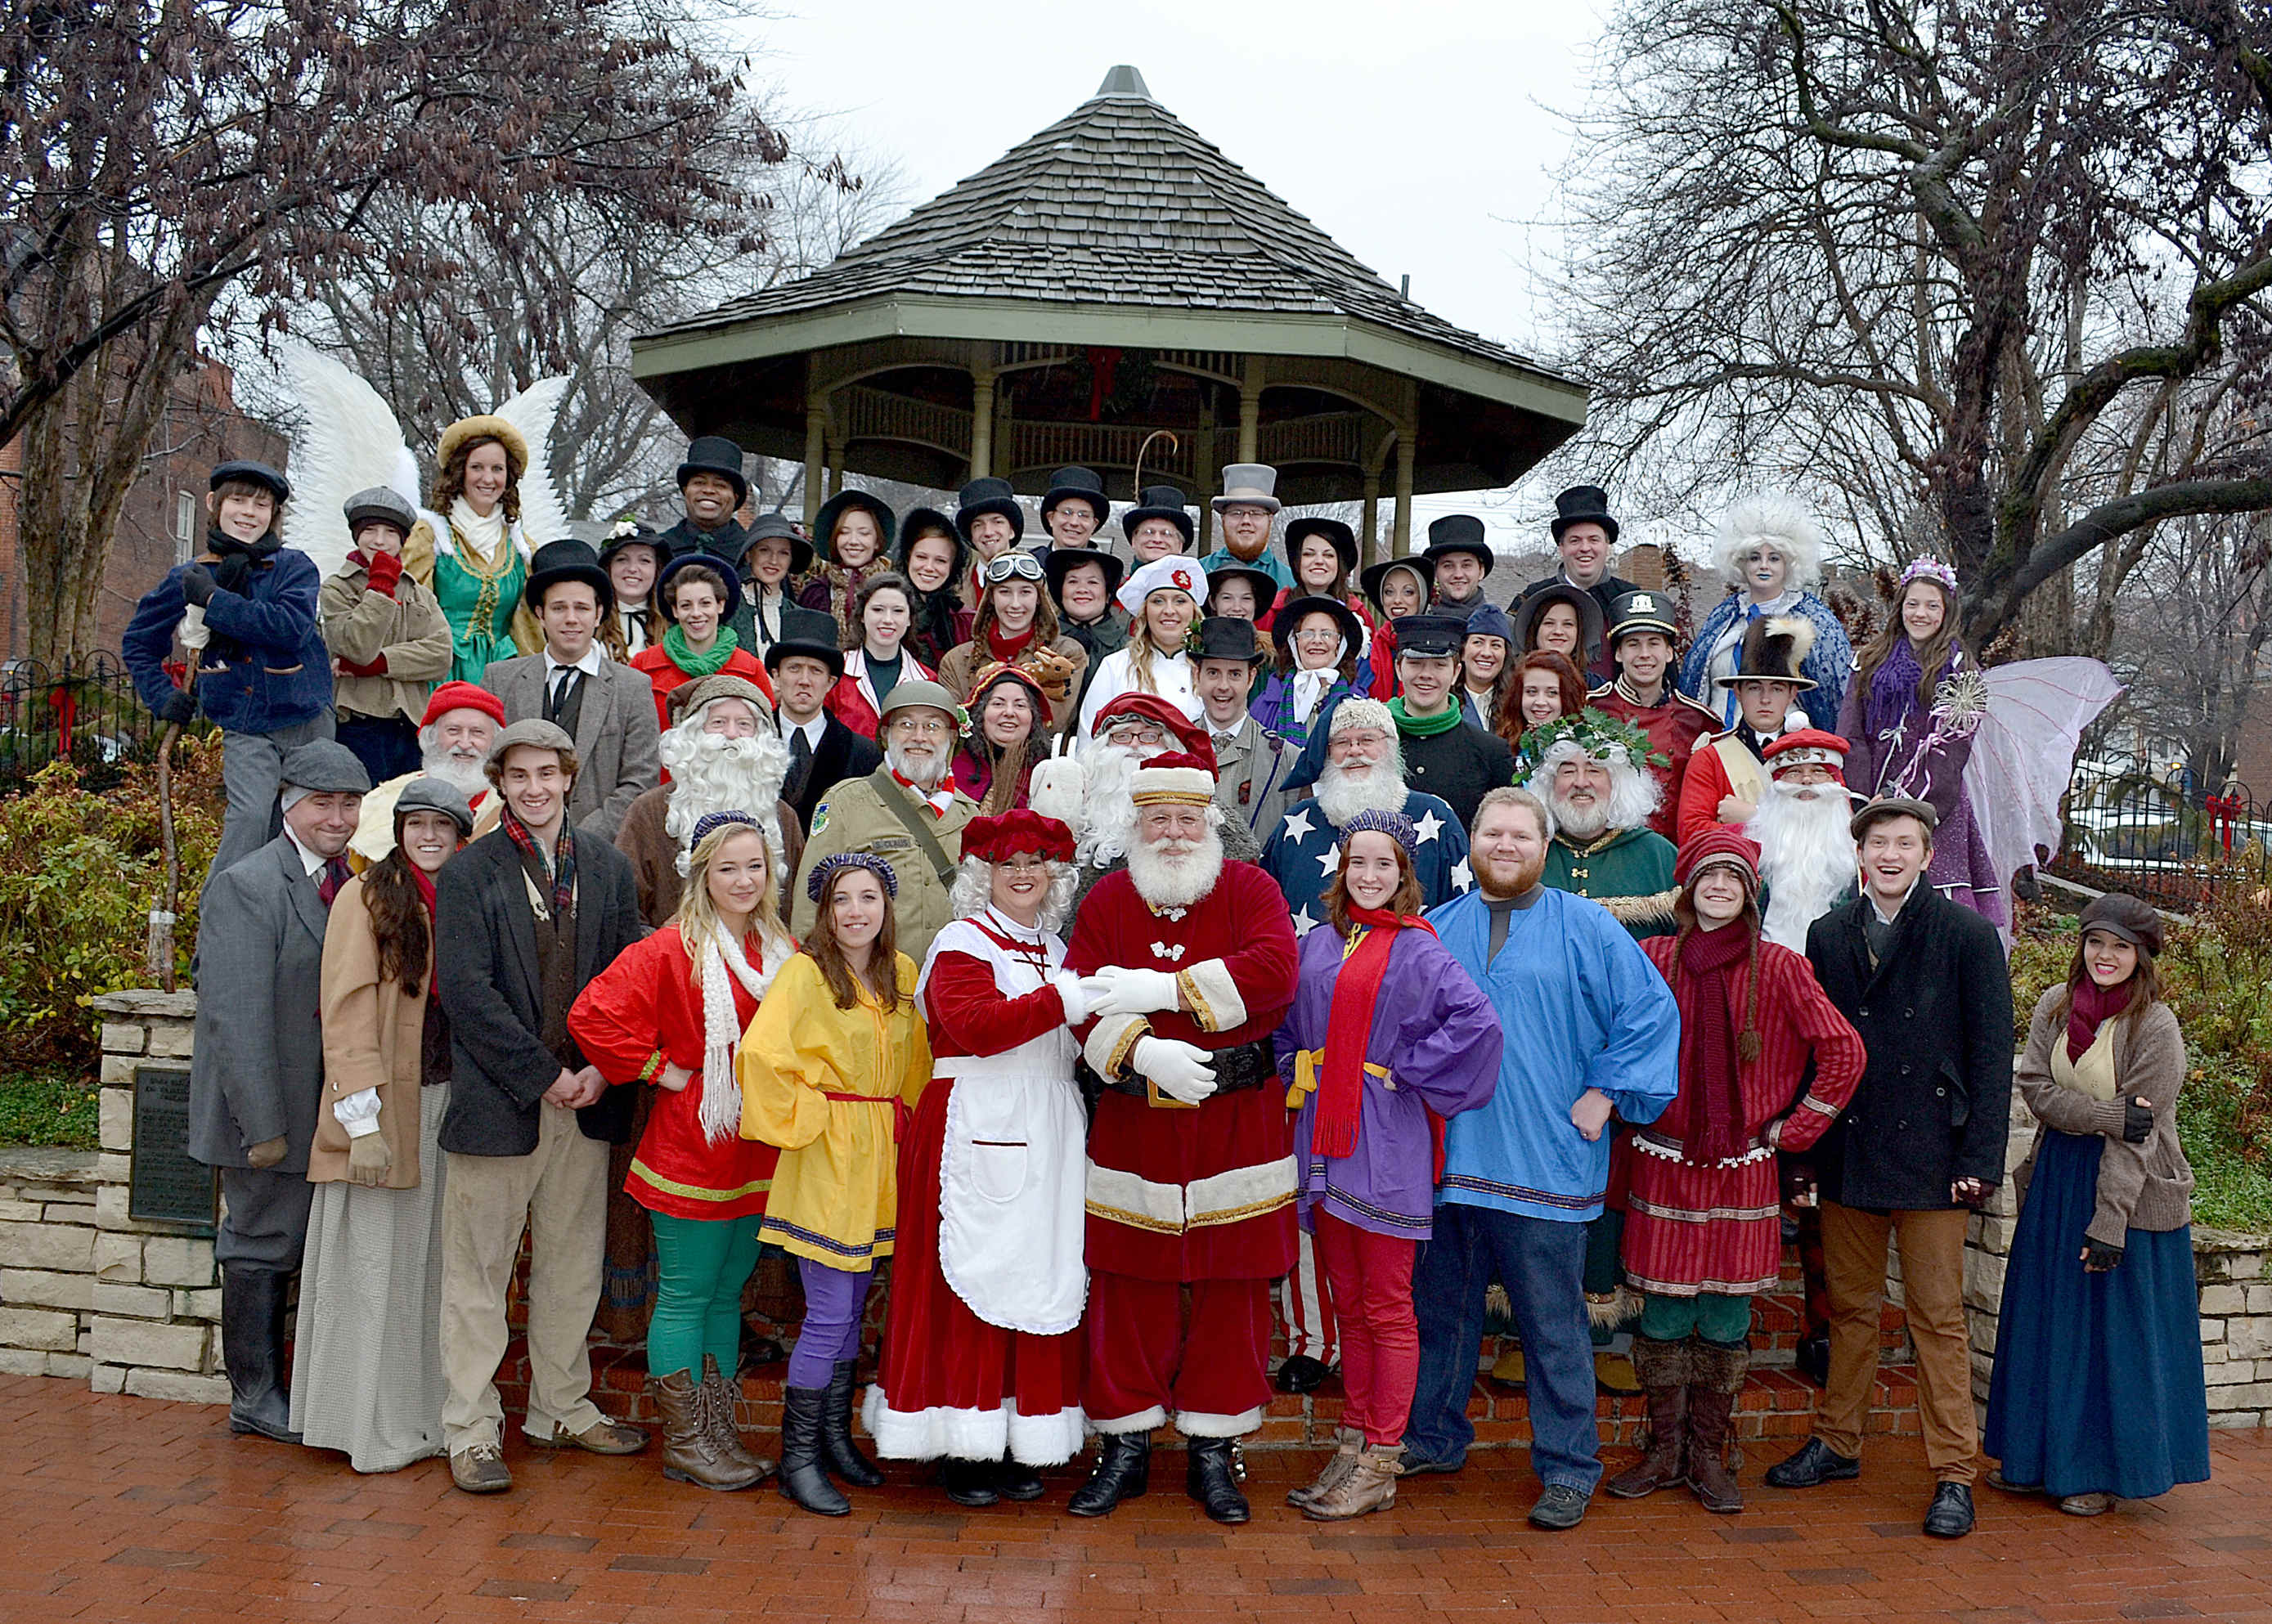 Christmas Traditions on Main Street in St. Charles